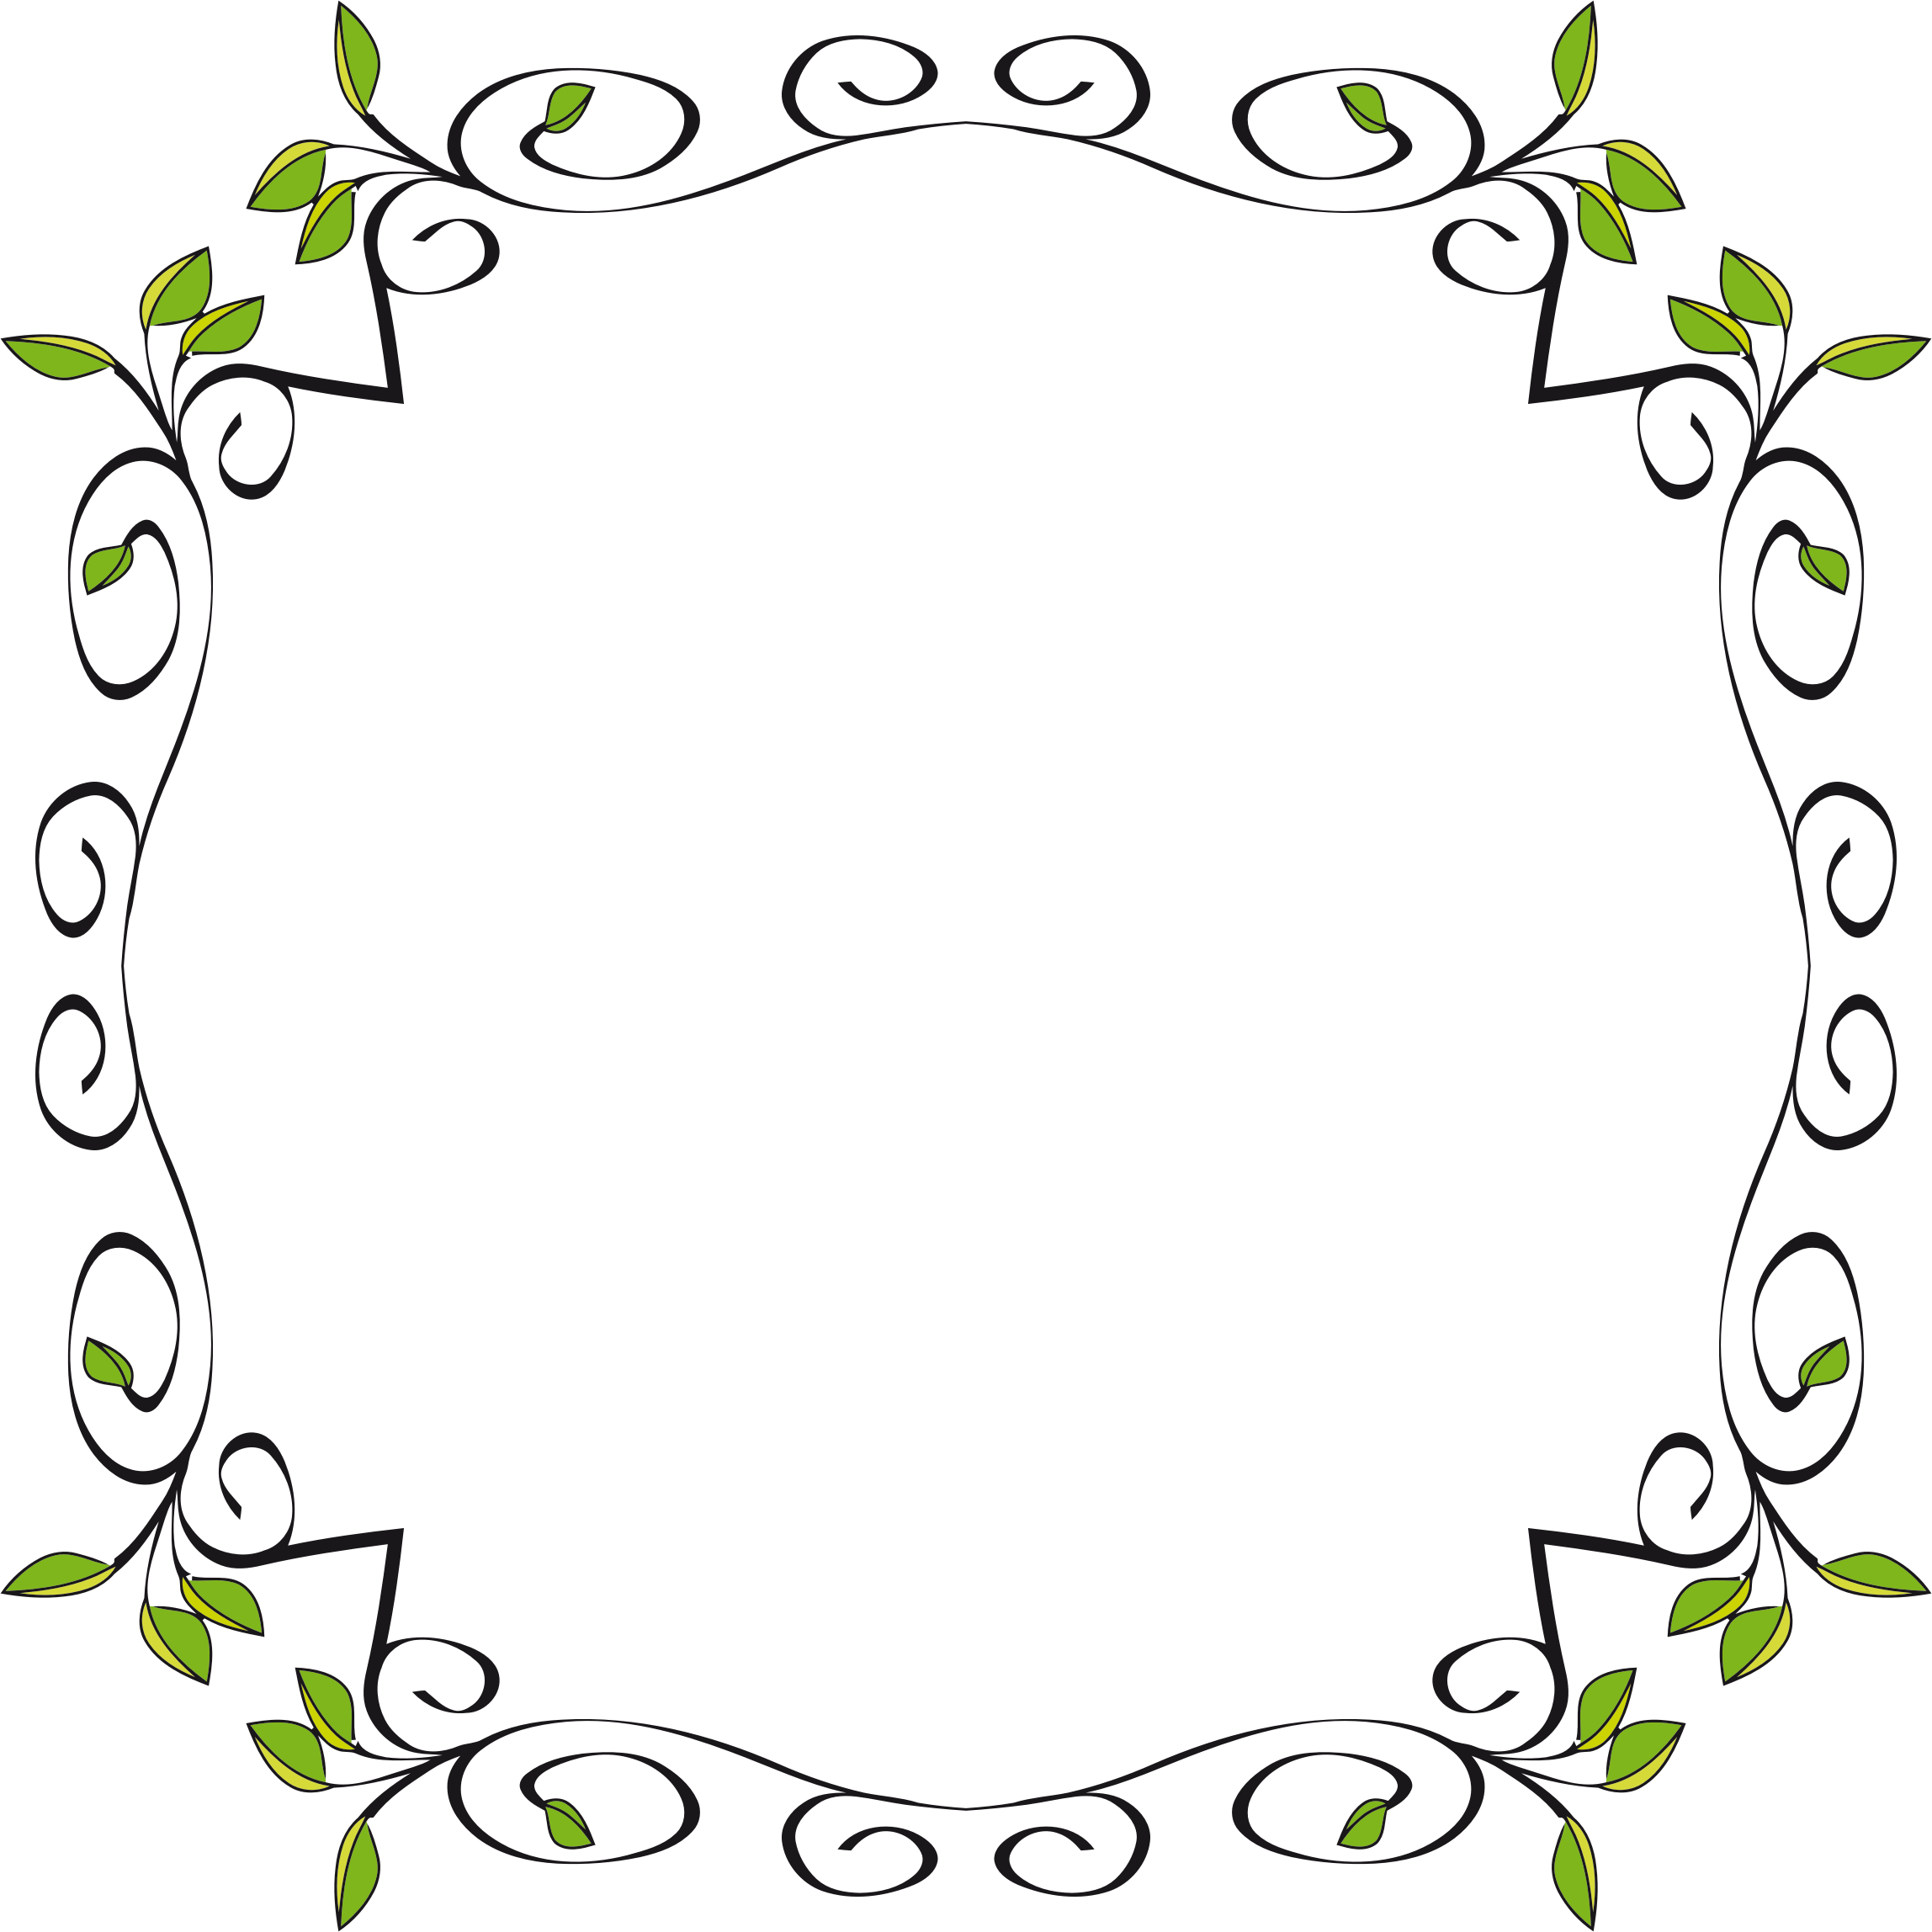 Border extended big image. Circle clipart floral